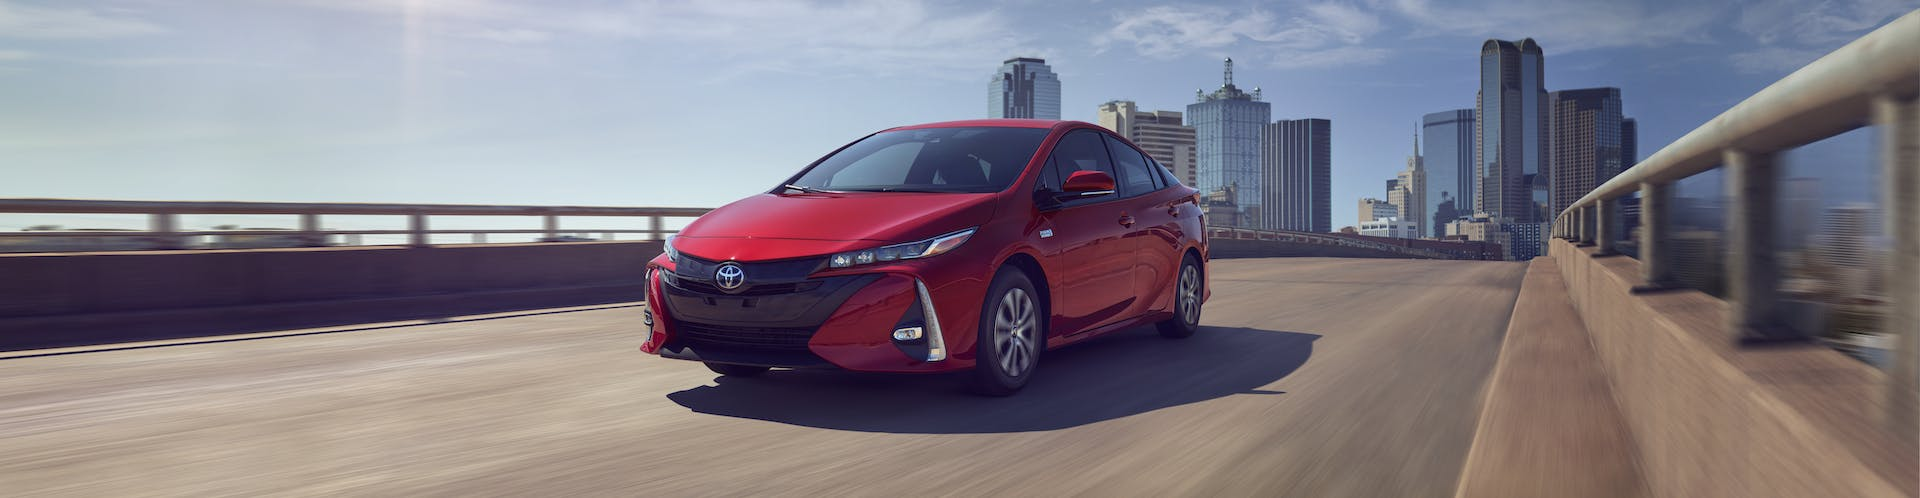 South Hills Toyota is a Toyota Dealership in Canonsburg near Pittsburgh PA | 2021 Toyota Prius Prime driving away from city